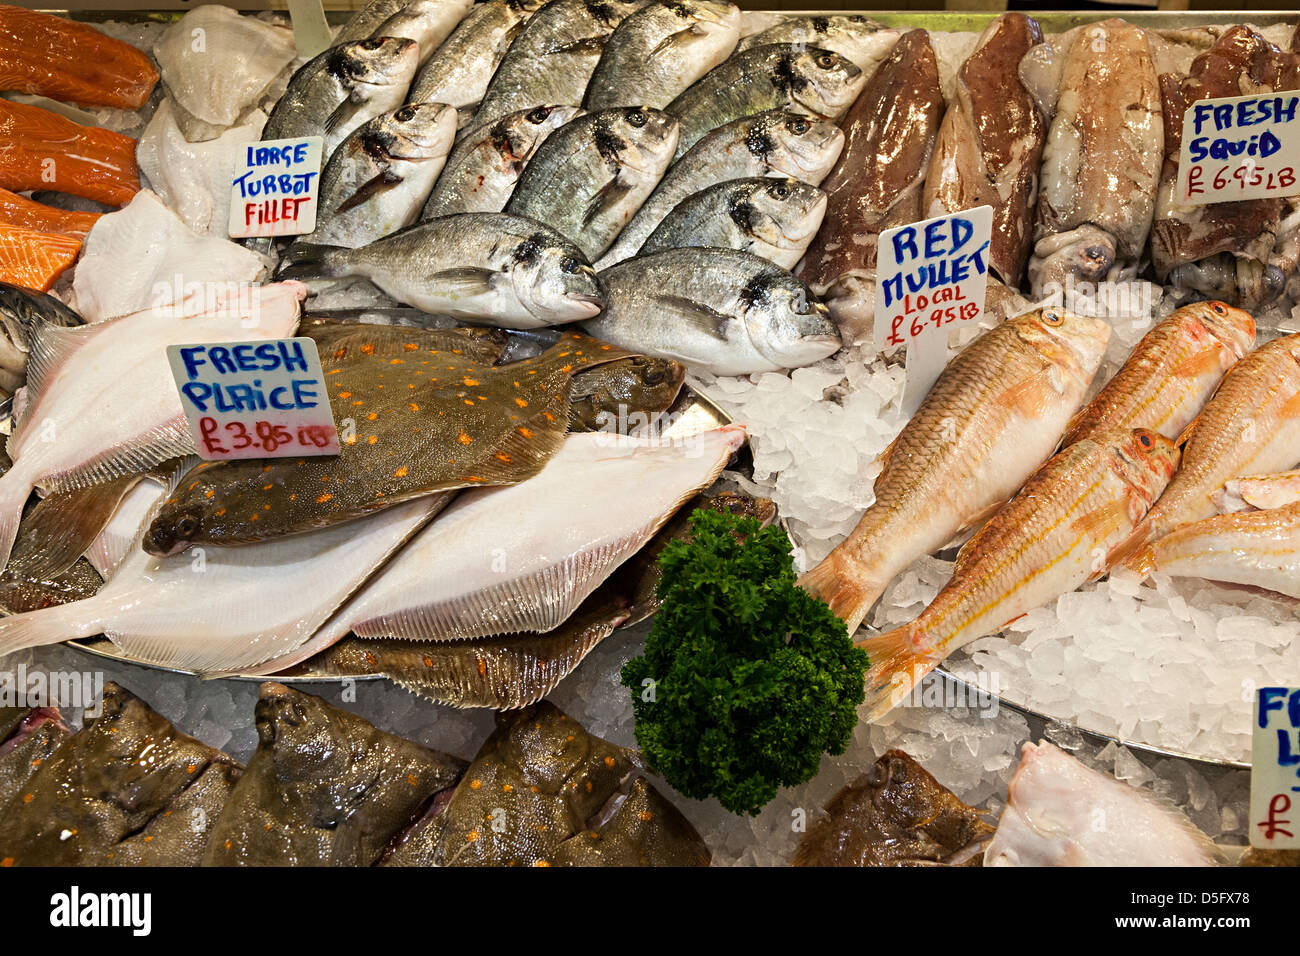 Fresh fish on sale in fishmonger, indoor market, St Helier, Jersey, Channel Islands, UK - Stock Image